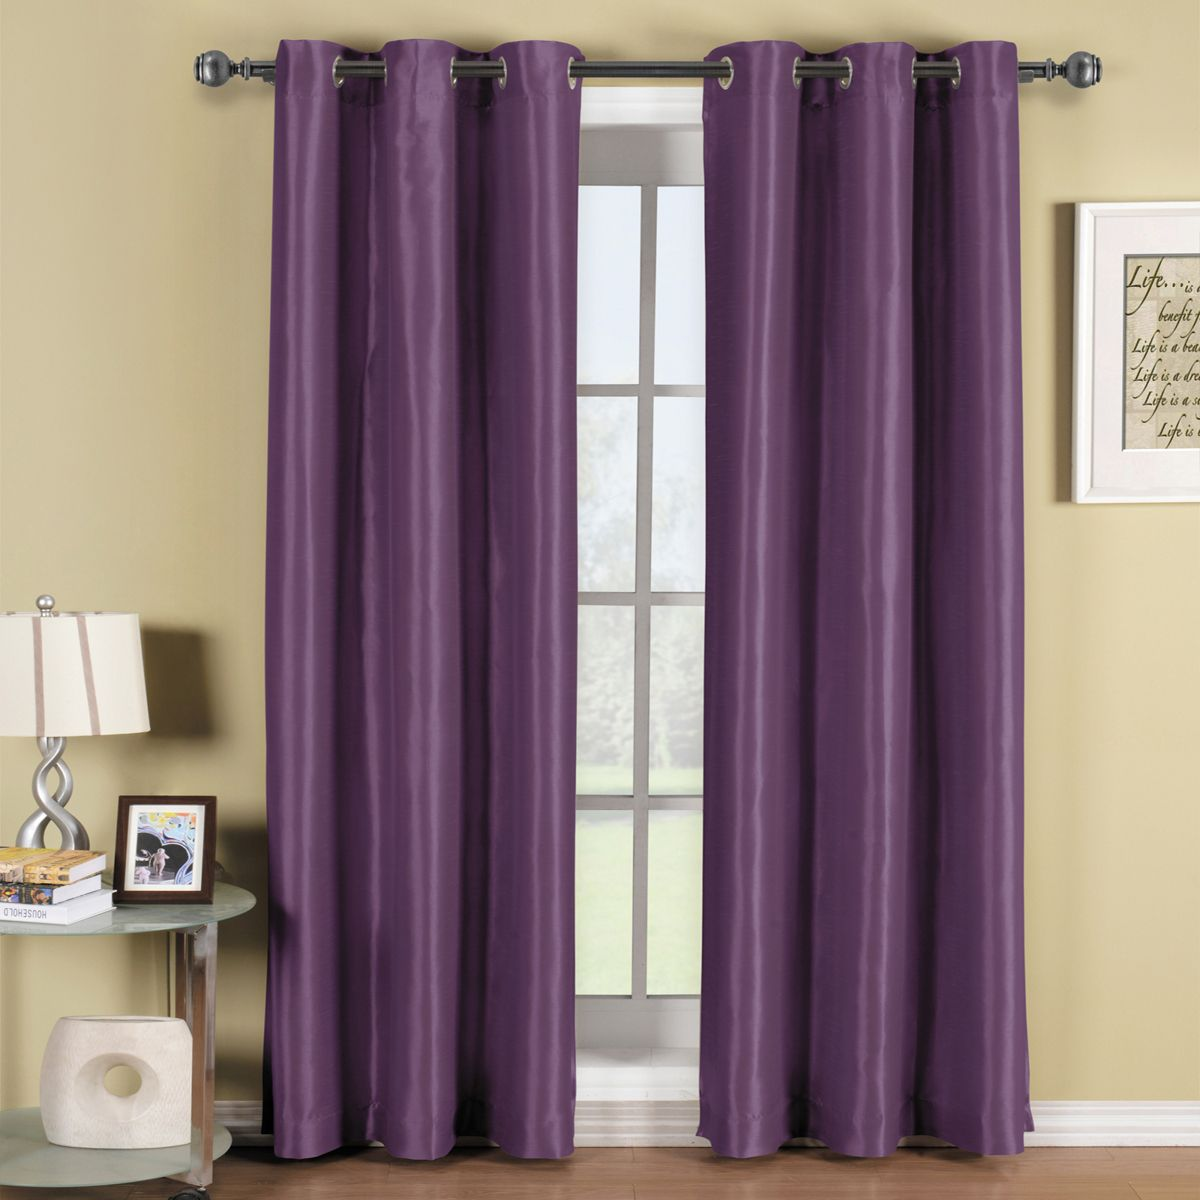 Curtains At Walmart Drapes And Panels Thermal Kitchen Window Cheap